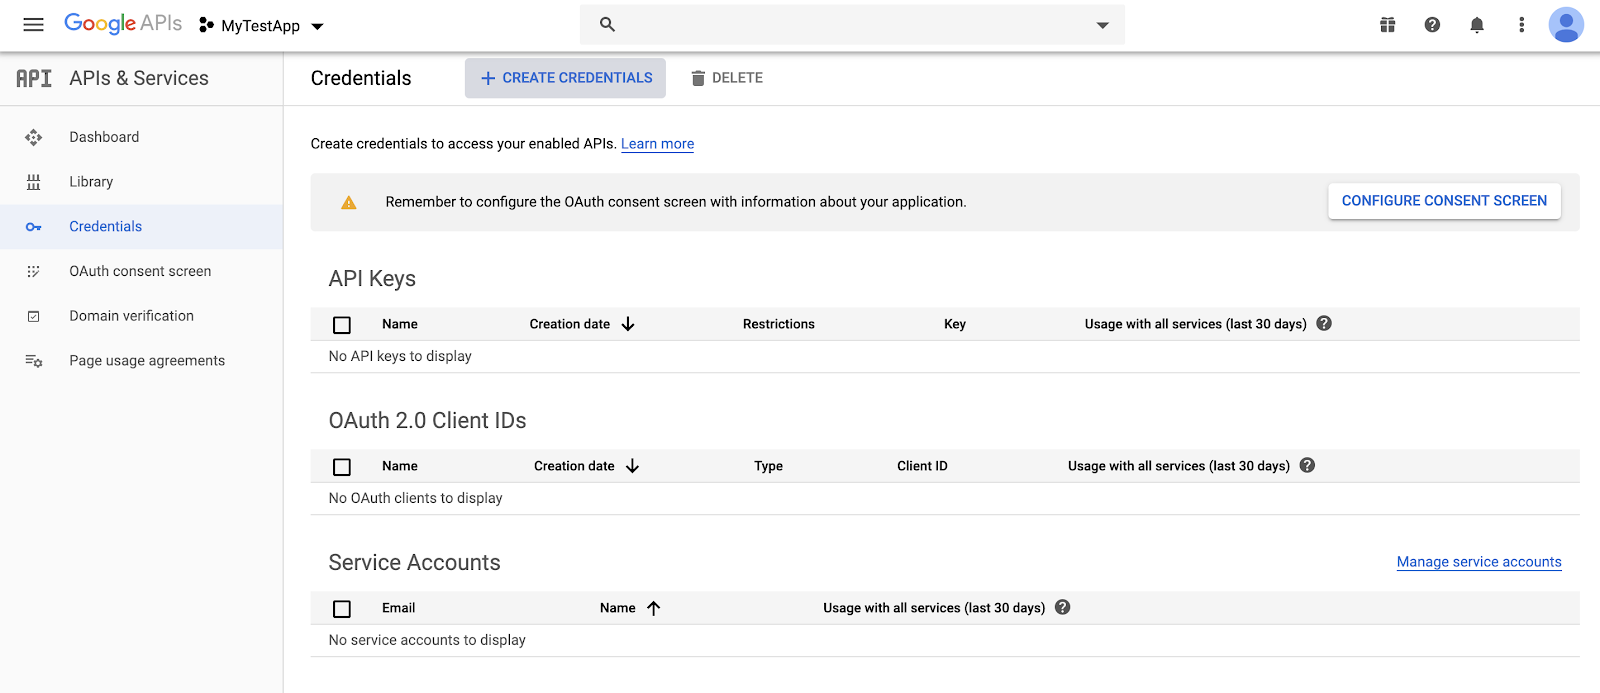 google developer console app dashboard, credentials as selected option